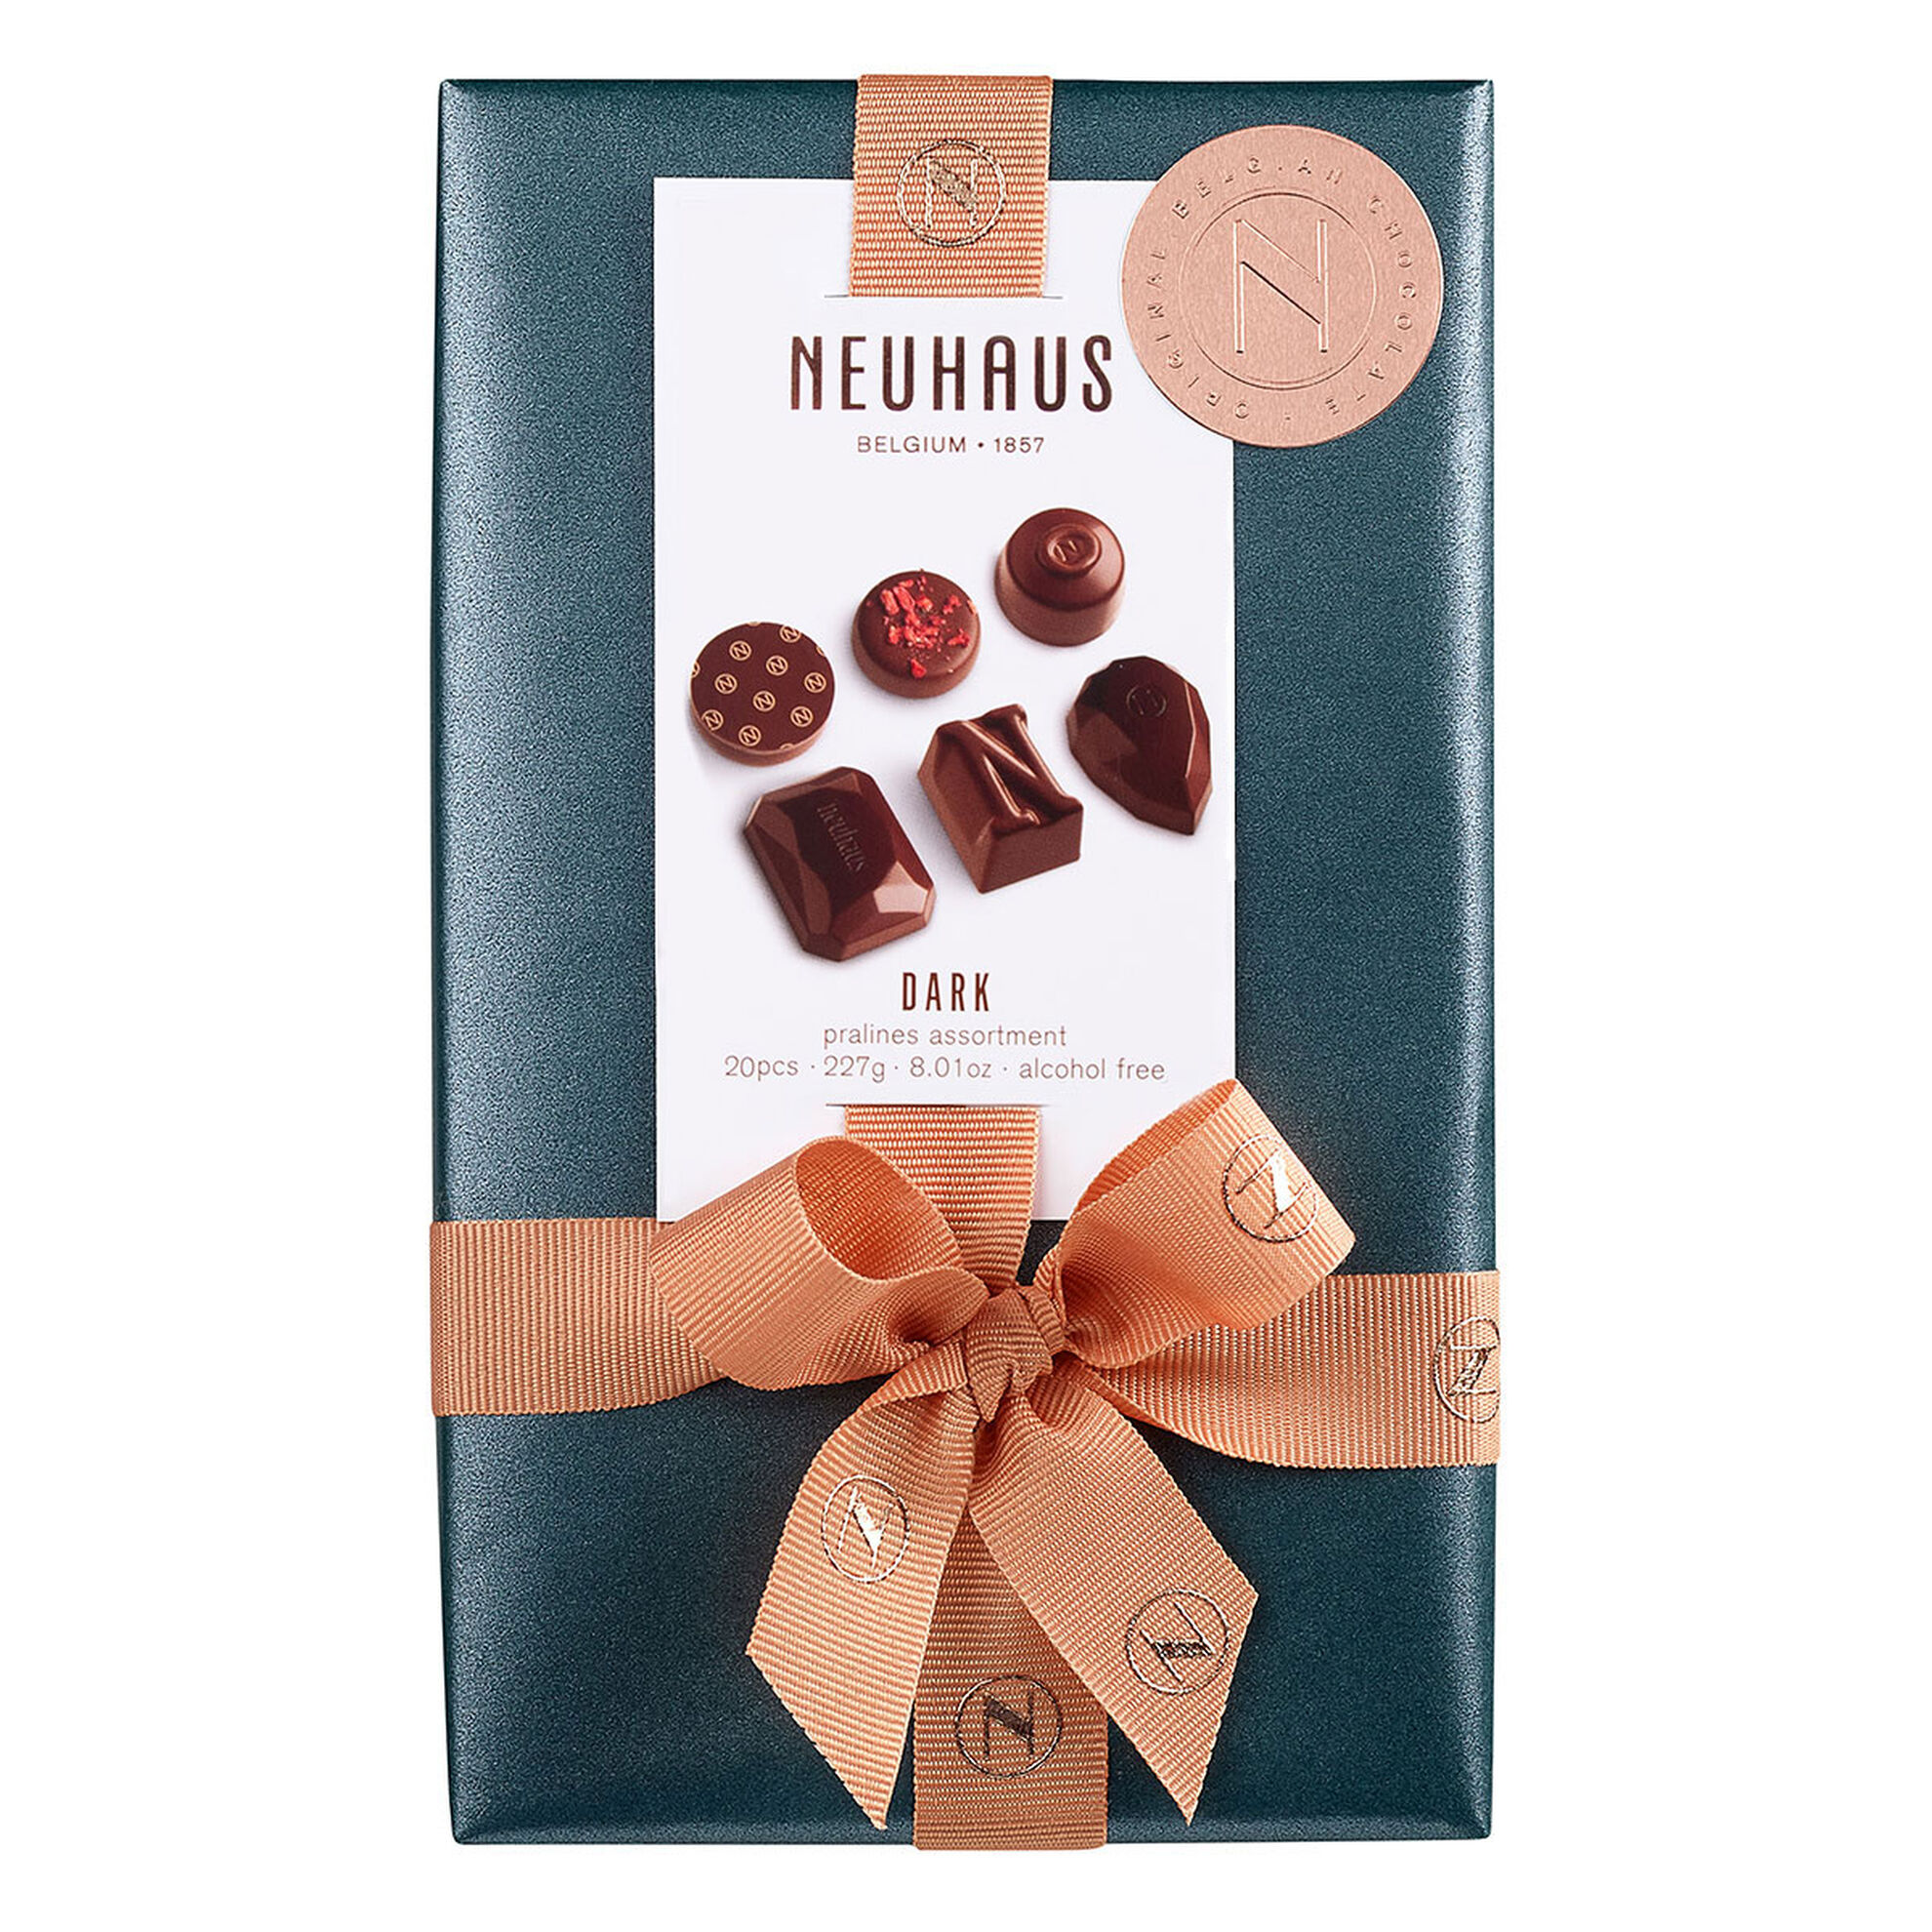 Neuhaus Dark Chocolate Ballotin 20 pcs image number 01